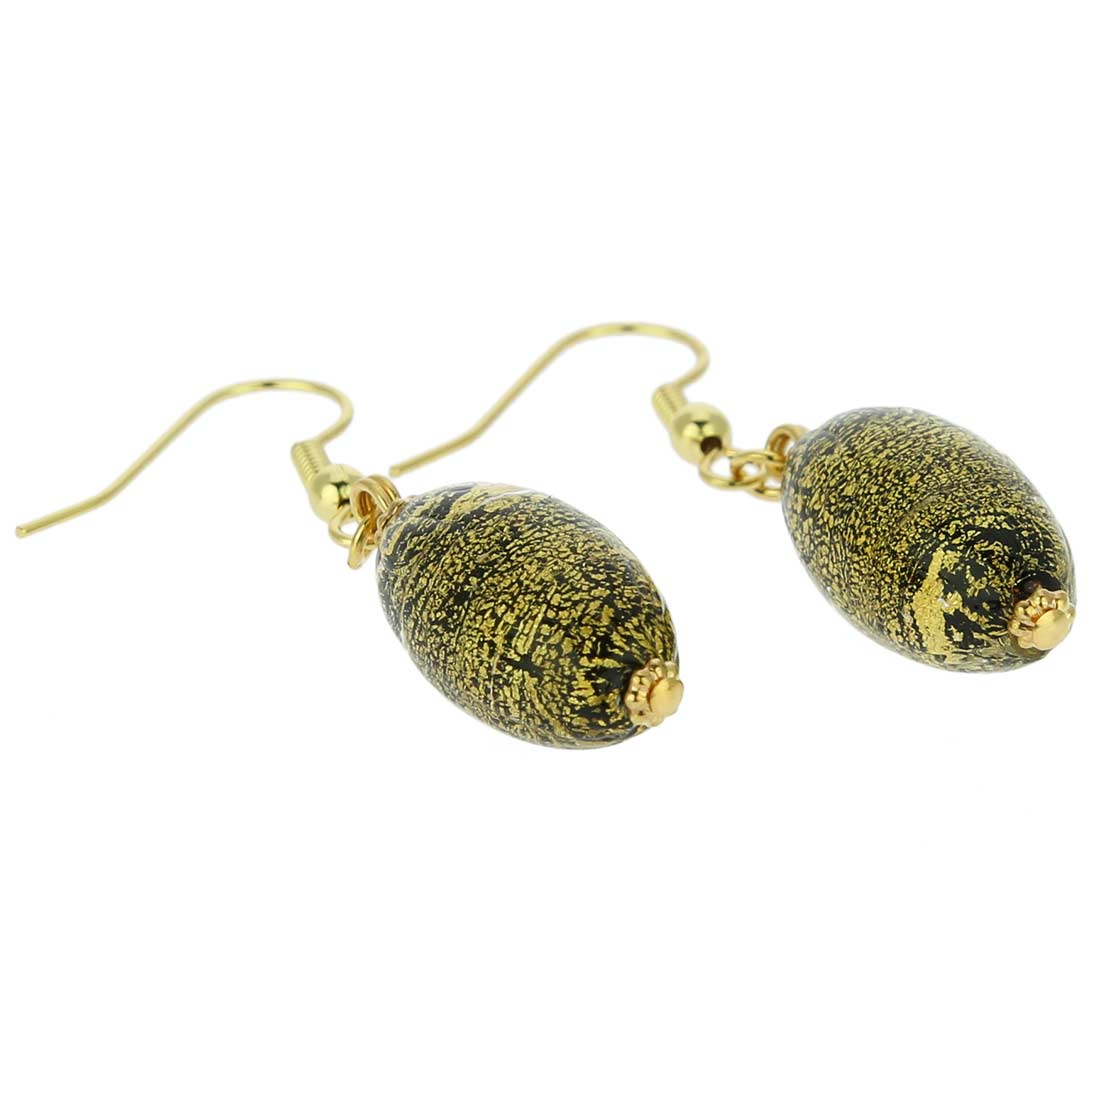 Ca D\'Oro Olives Earrings - Black